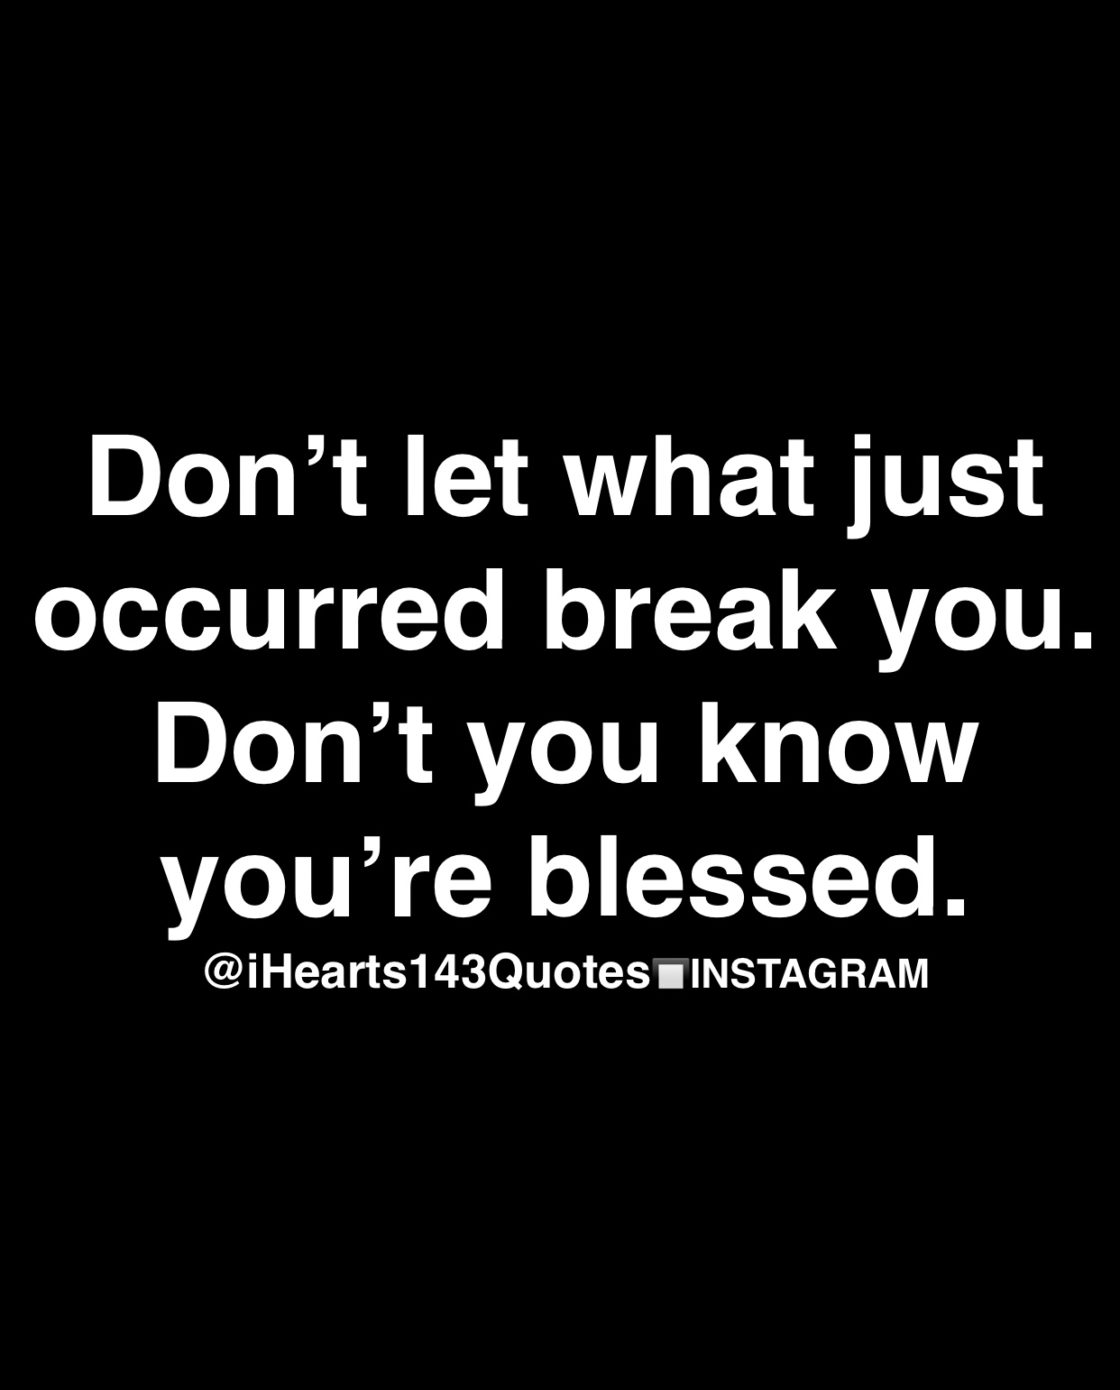 Image of: God Bless Daily Motivational Quotes Daily Motivational Quotes Ihearts143quotes Daily Motivational Quotes Ihearts143quotes